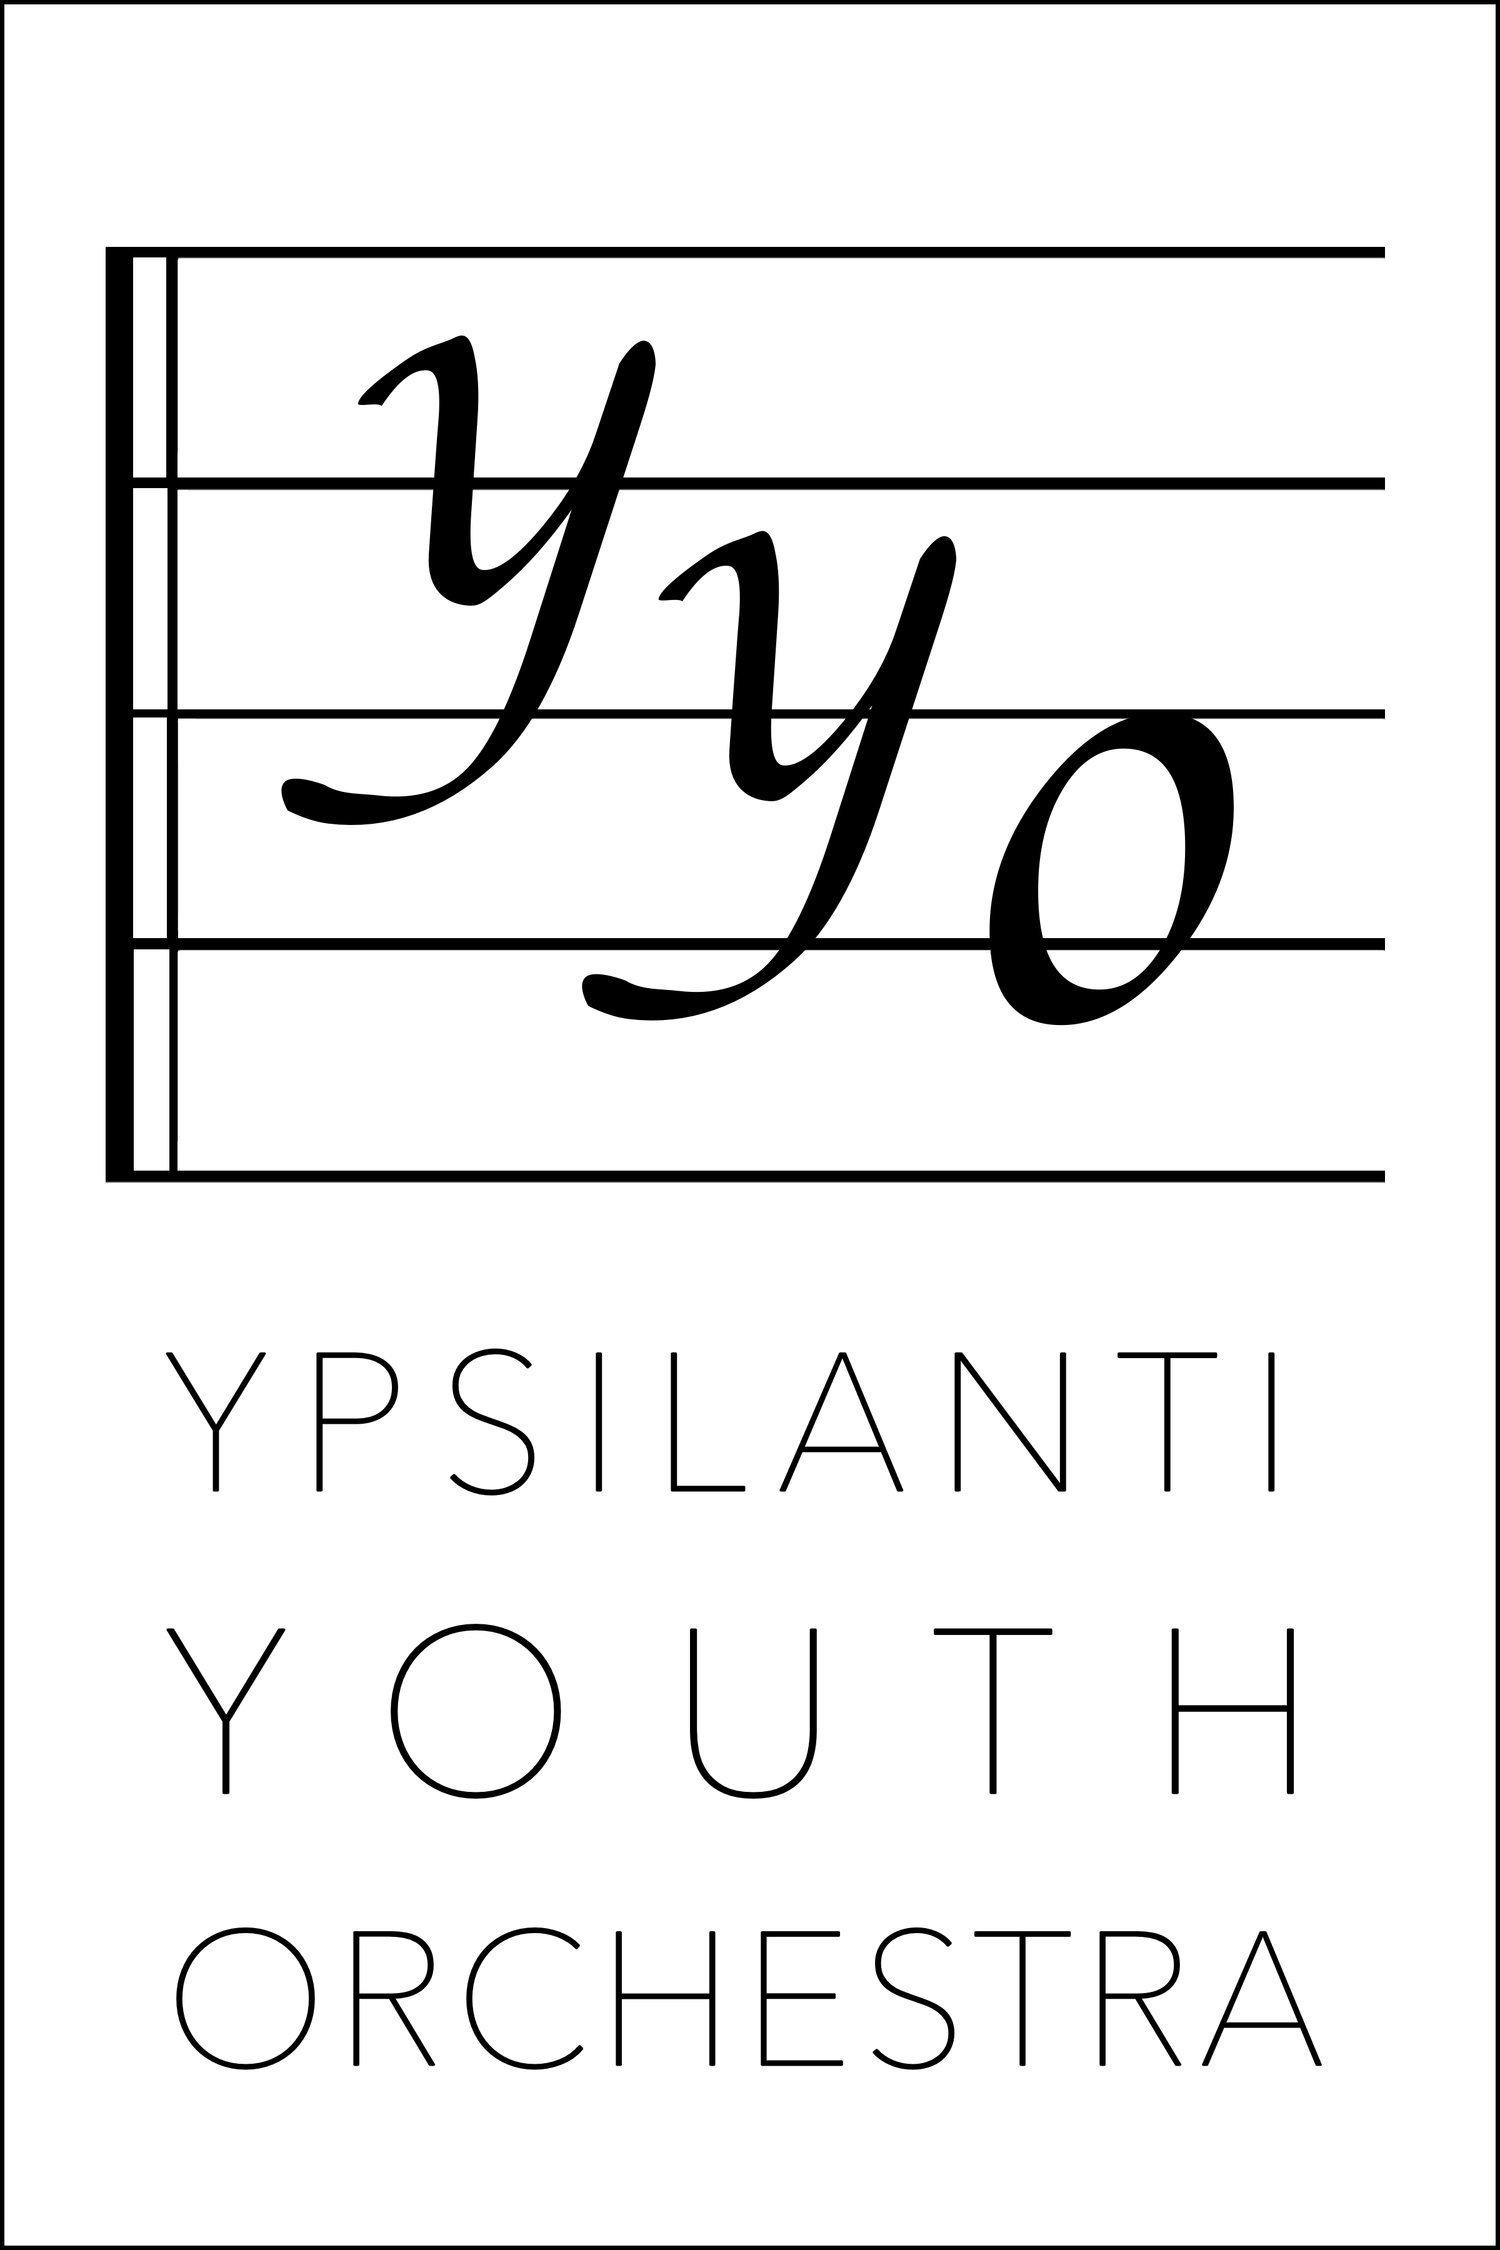 Ypsilanti Youth Orchestra